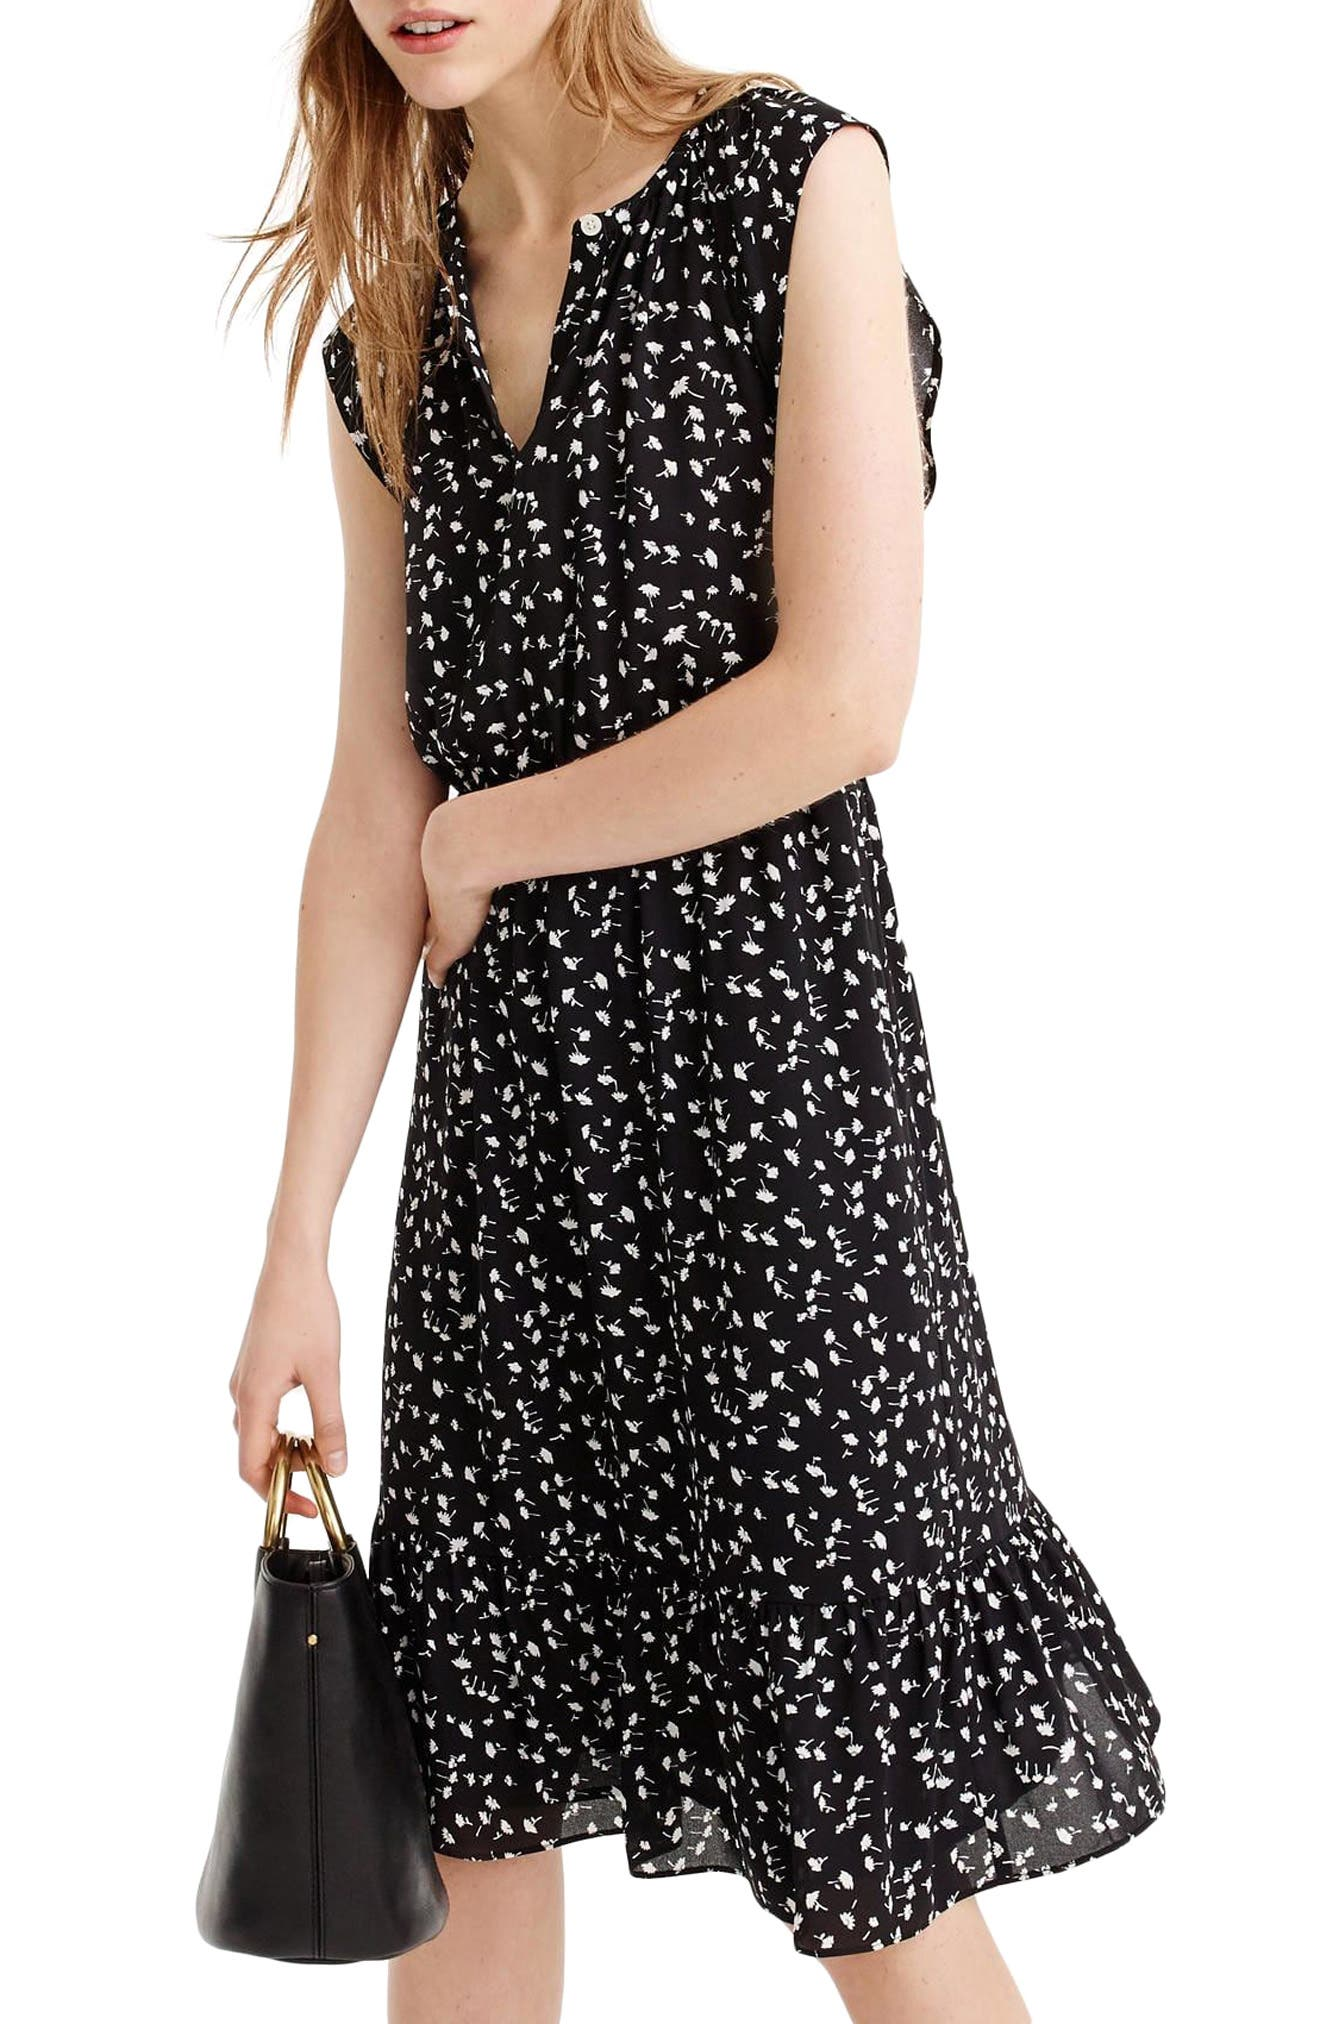 Daisy Floral Cap Sleeve Midi Dress,                             Main thumbnail 1, color,                             010